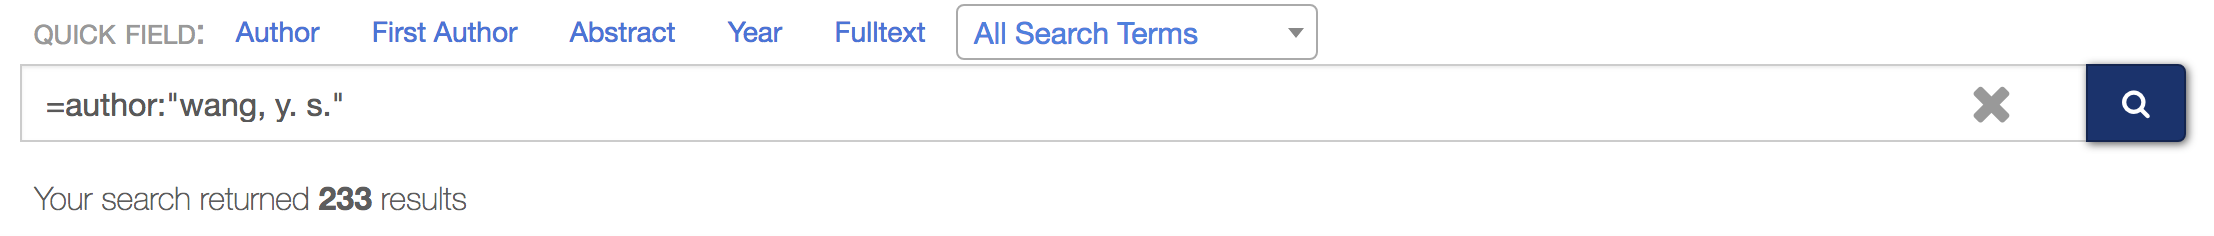 Exact    name matching query with full family name and given name and middle name    initials. 233 total search results.